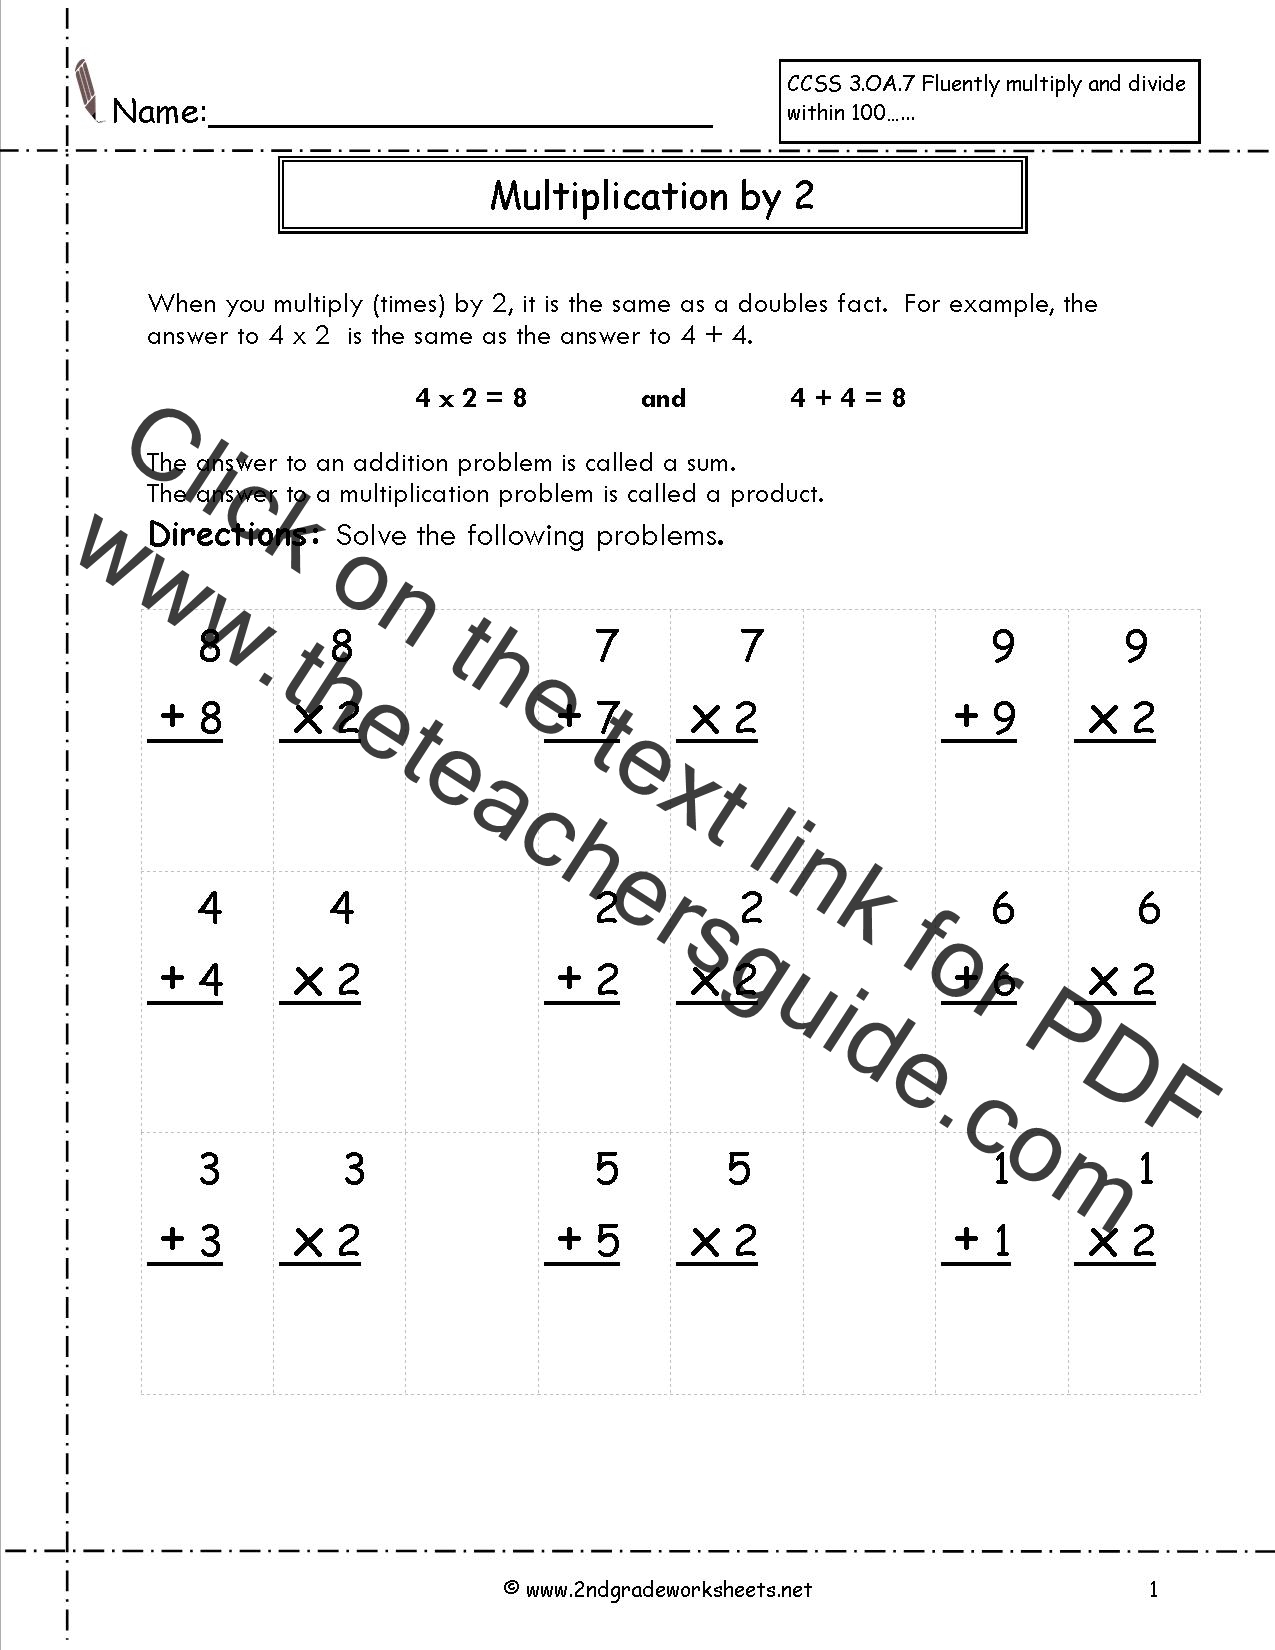 math worksheet : multiplication worksheets and printouts : 100 Multiplication Facts Worksheet